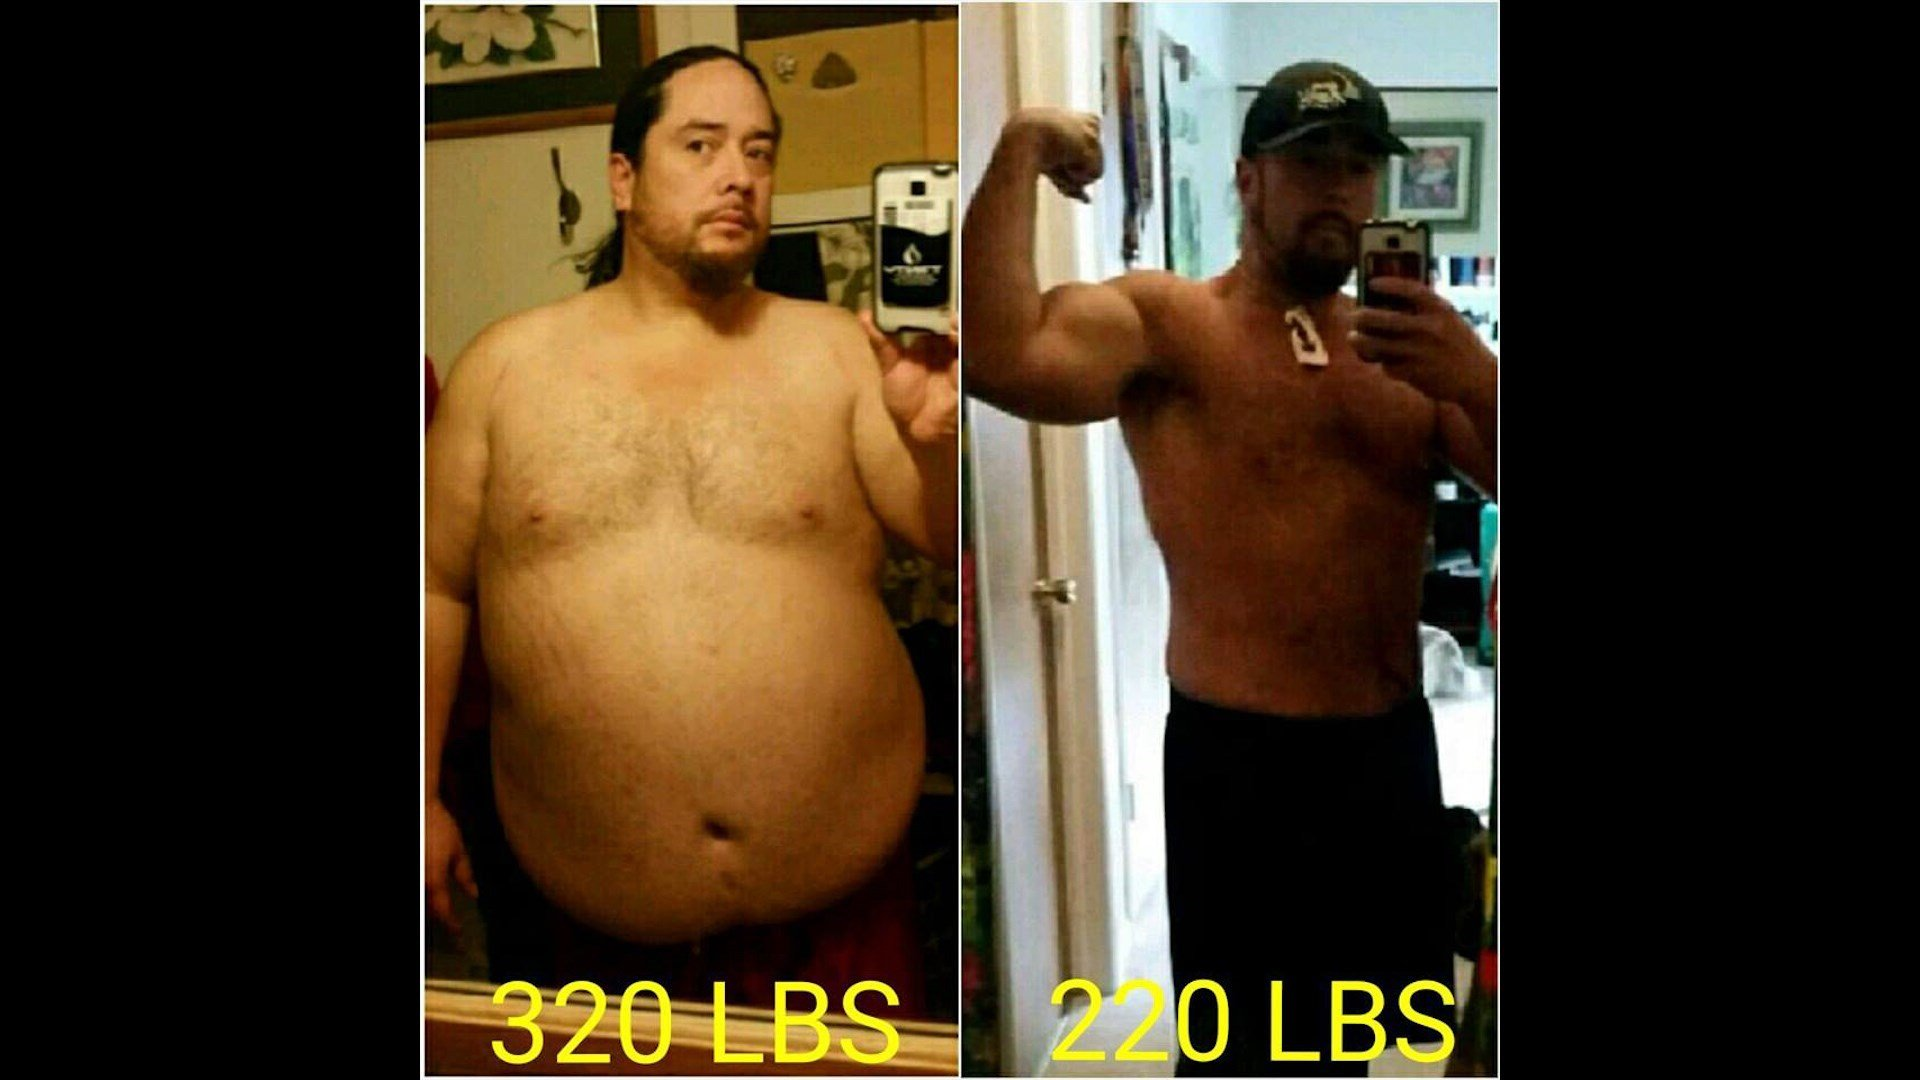 Rafaele lost more than 100 pounds in less than a year (Facebook photo)